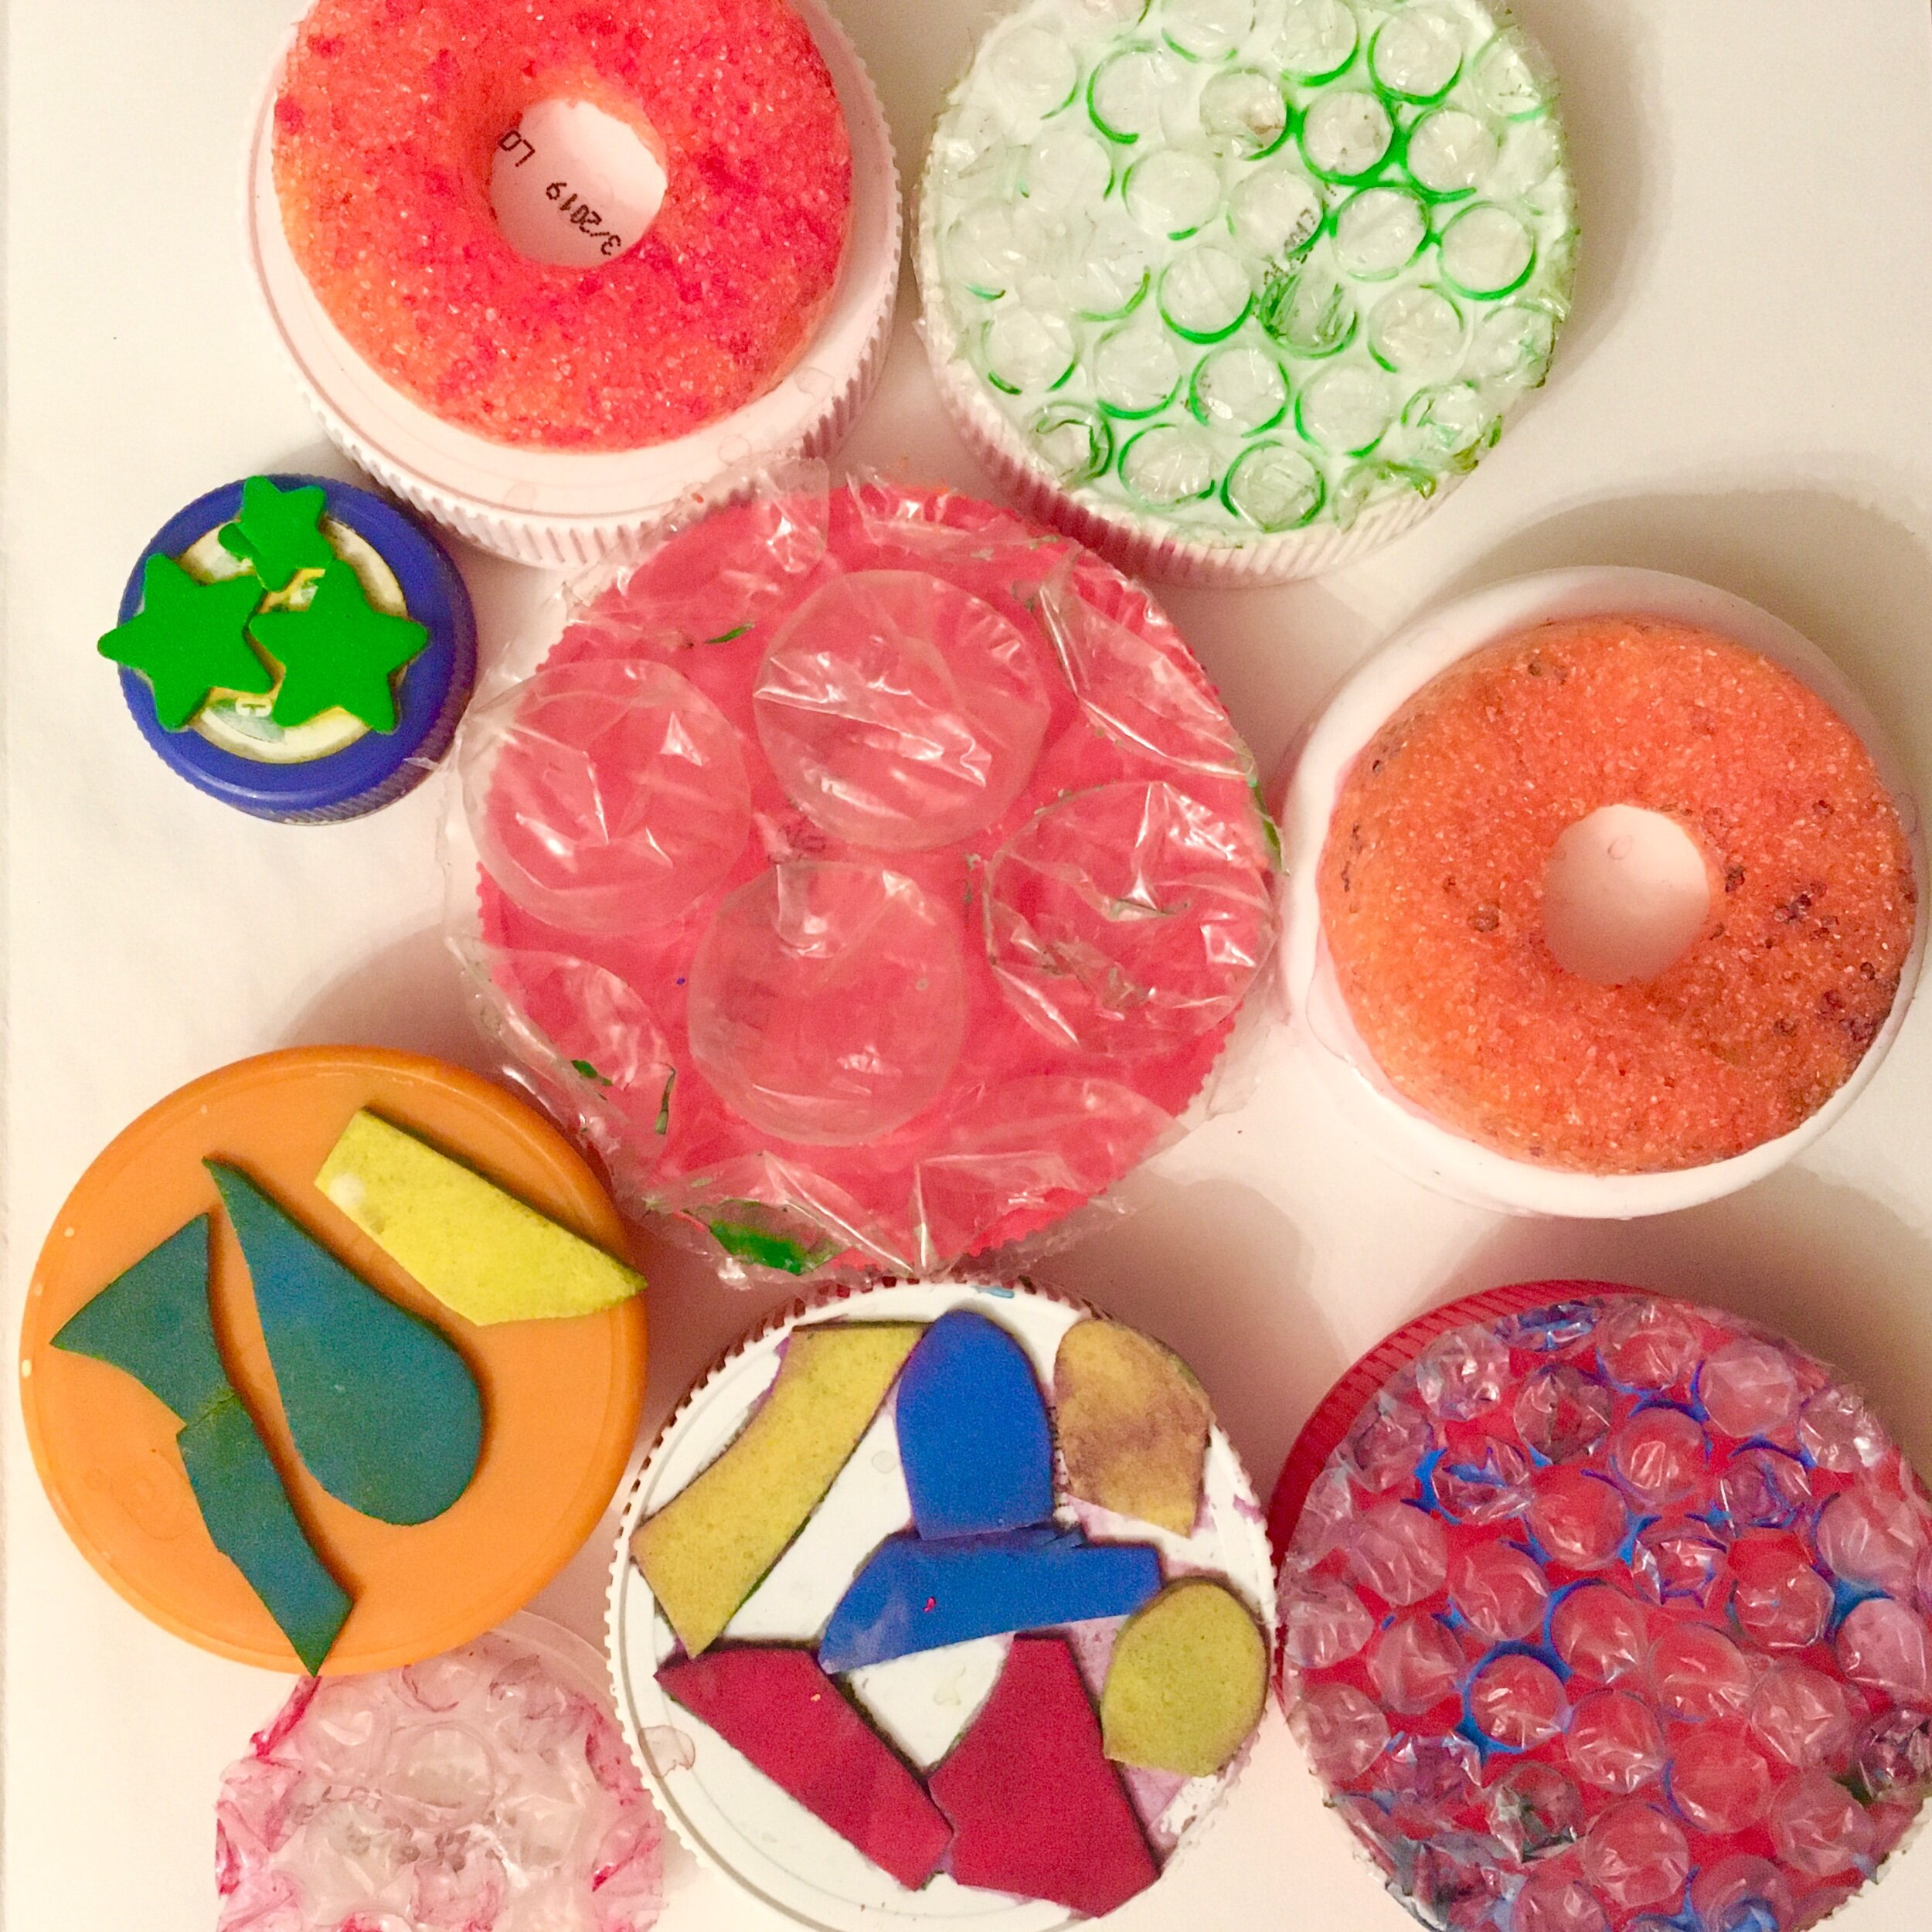 - My stamps include a slice of pool noodle, bubble wrap, foam star stickers, and foam scraps my children cut up.